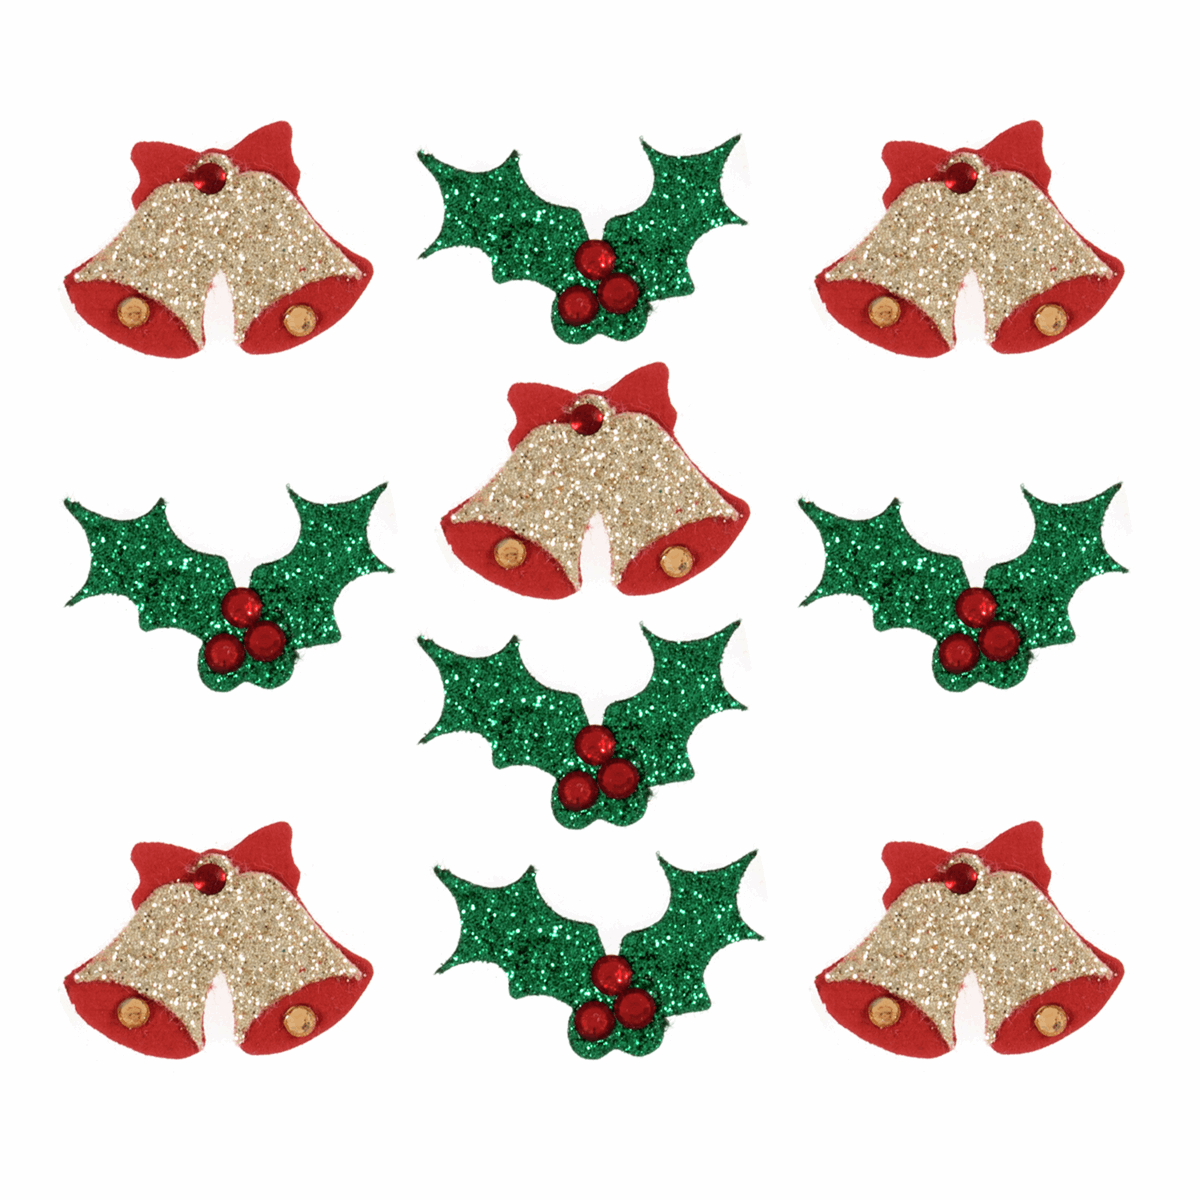 Picture of Craft Embellishments: Glitter Bells and Holly: 10 Pieces